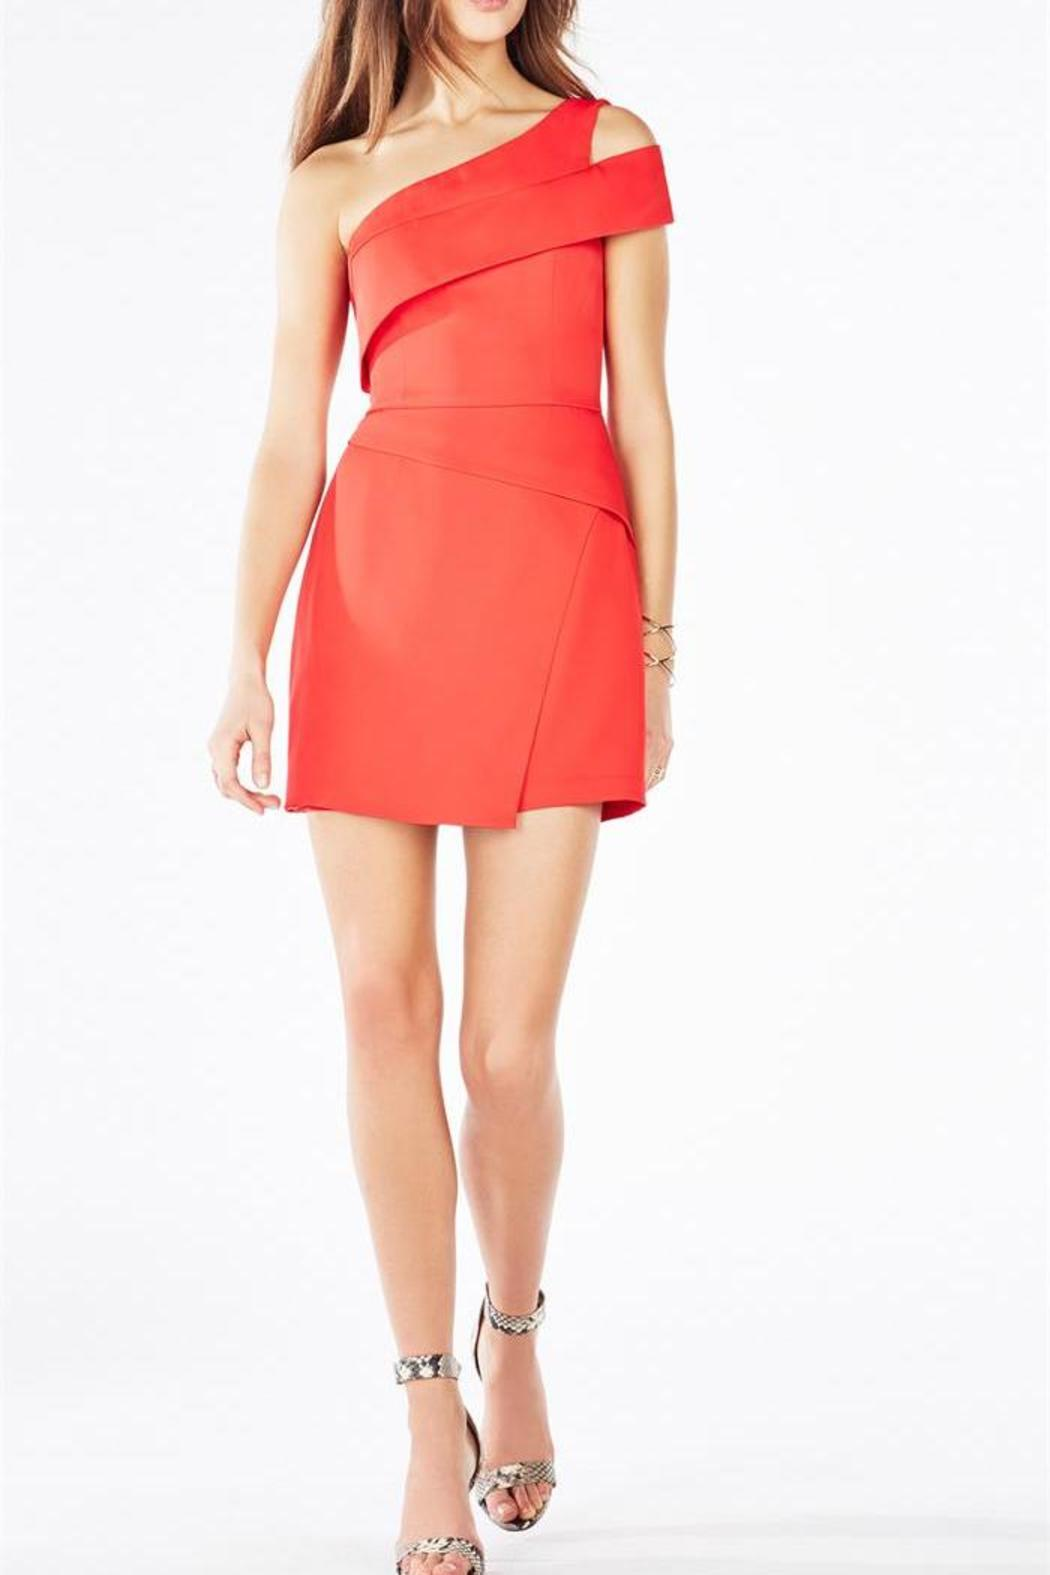 BCBG Max Azria Red One-Shoulder Dress from Back Bay by Max & Riley ...